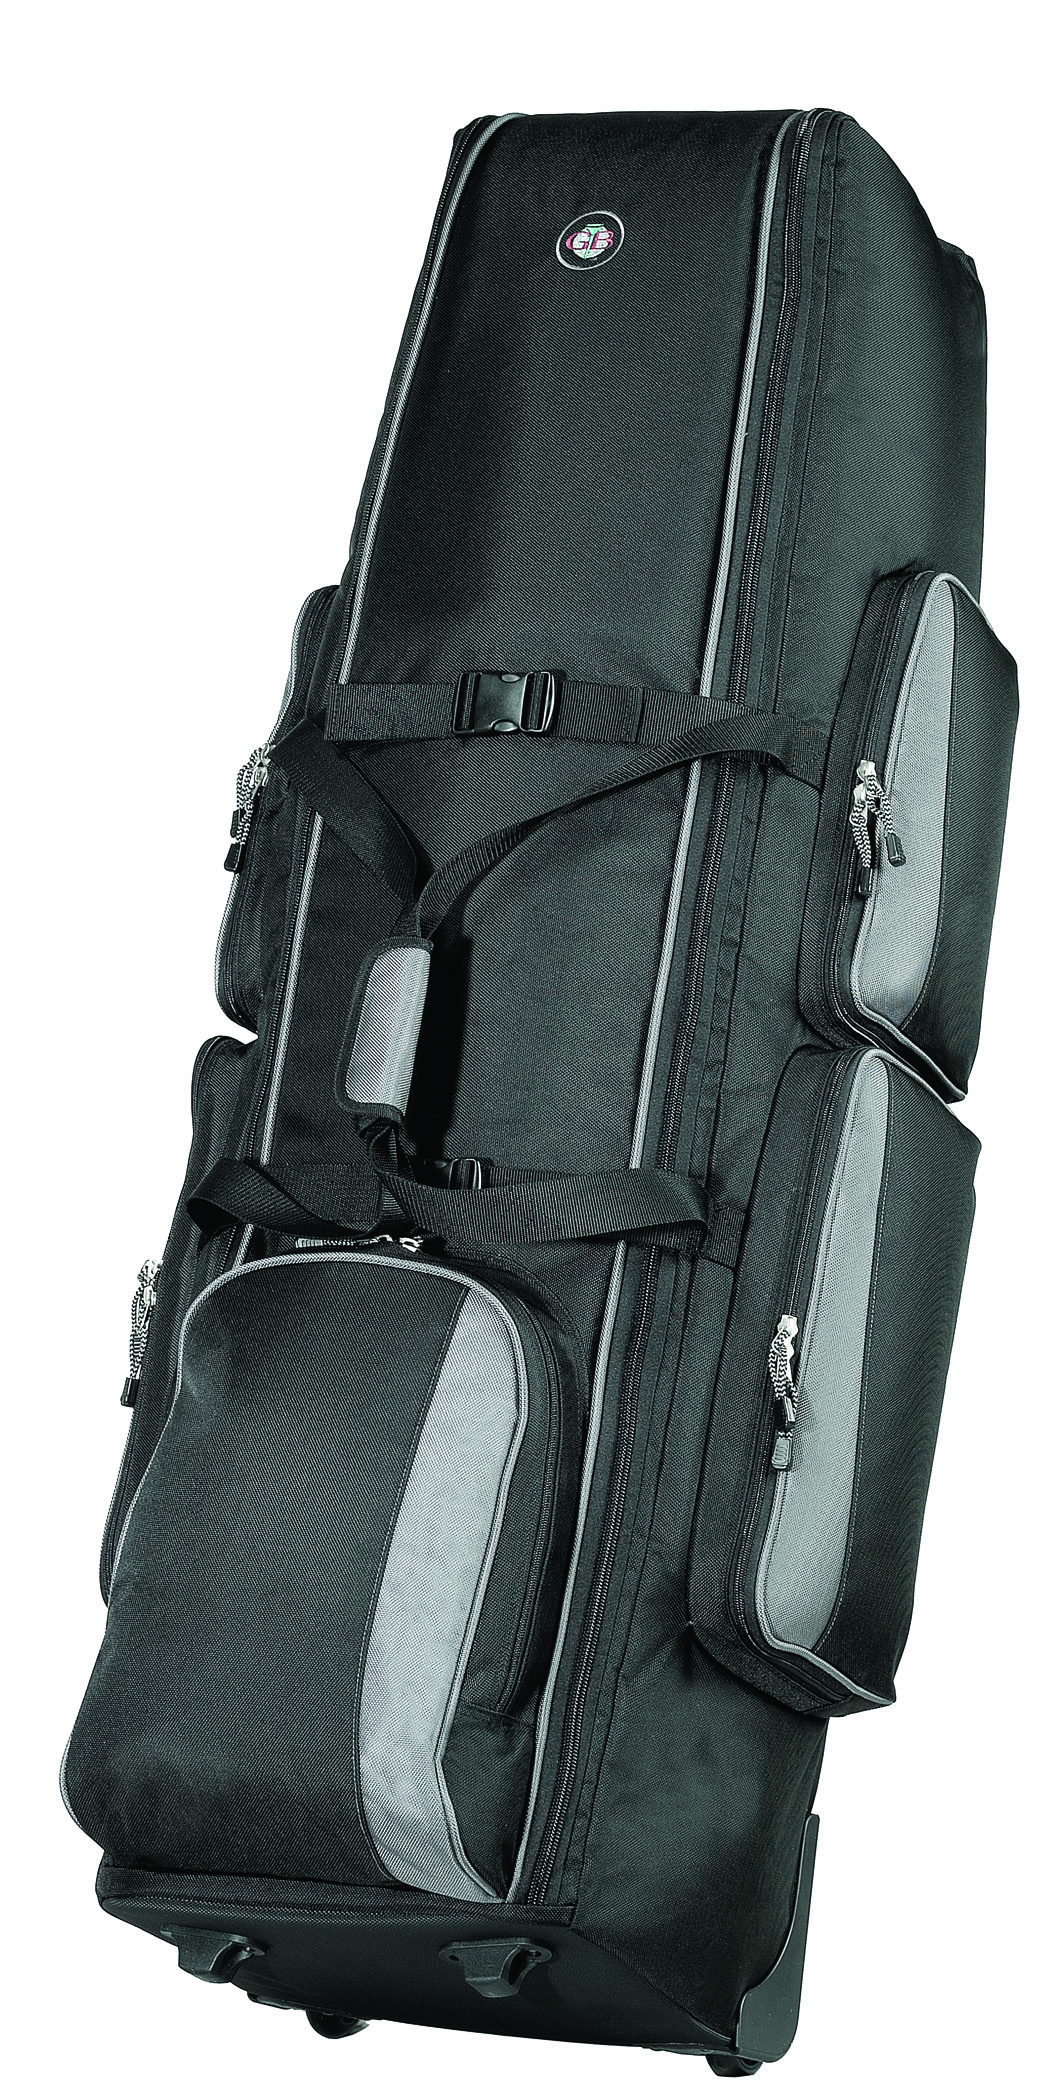 Club Limo 2 Golf Travel Bag Out Of Stock